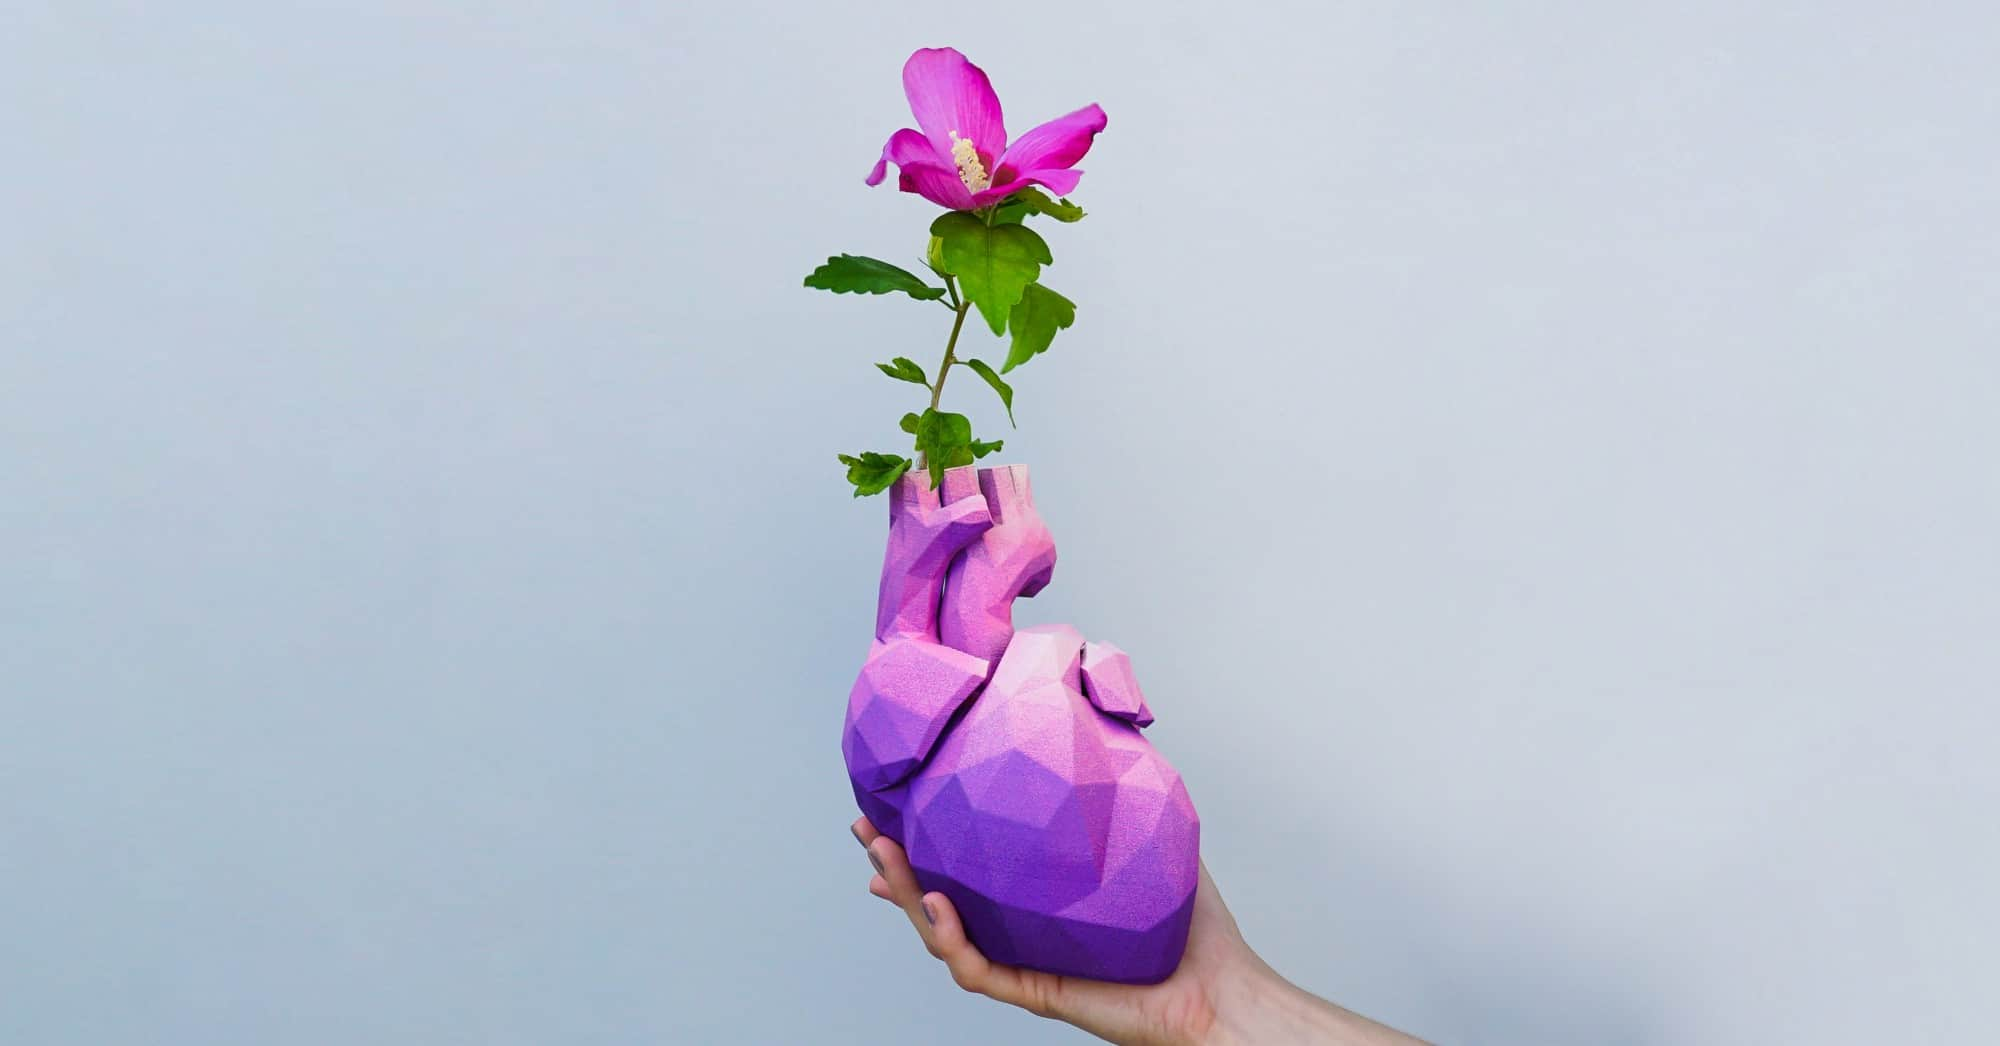 Give her your heart: The story behind our low poly heart vase model